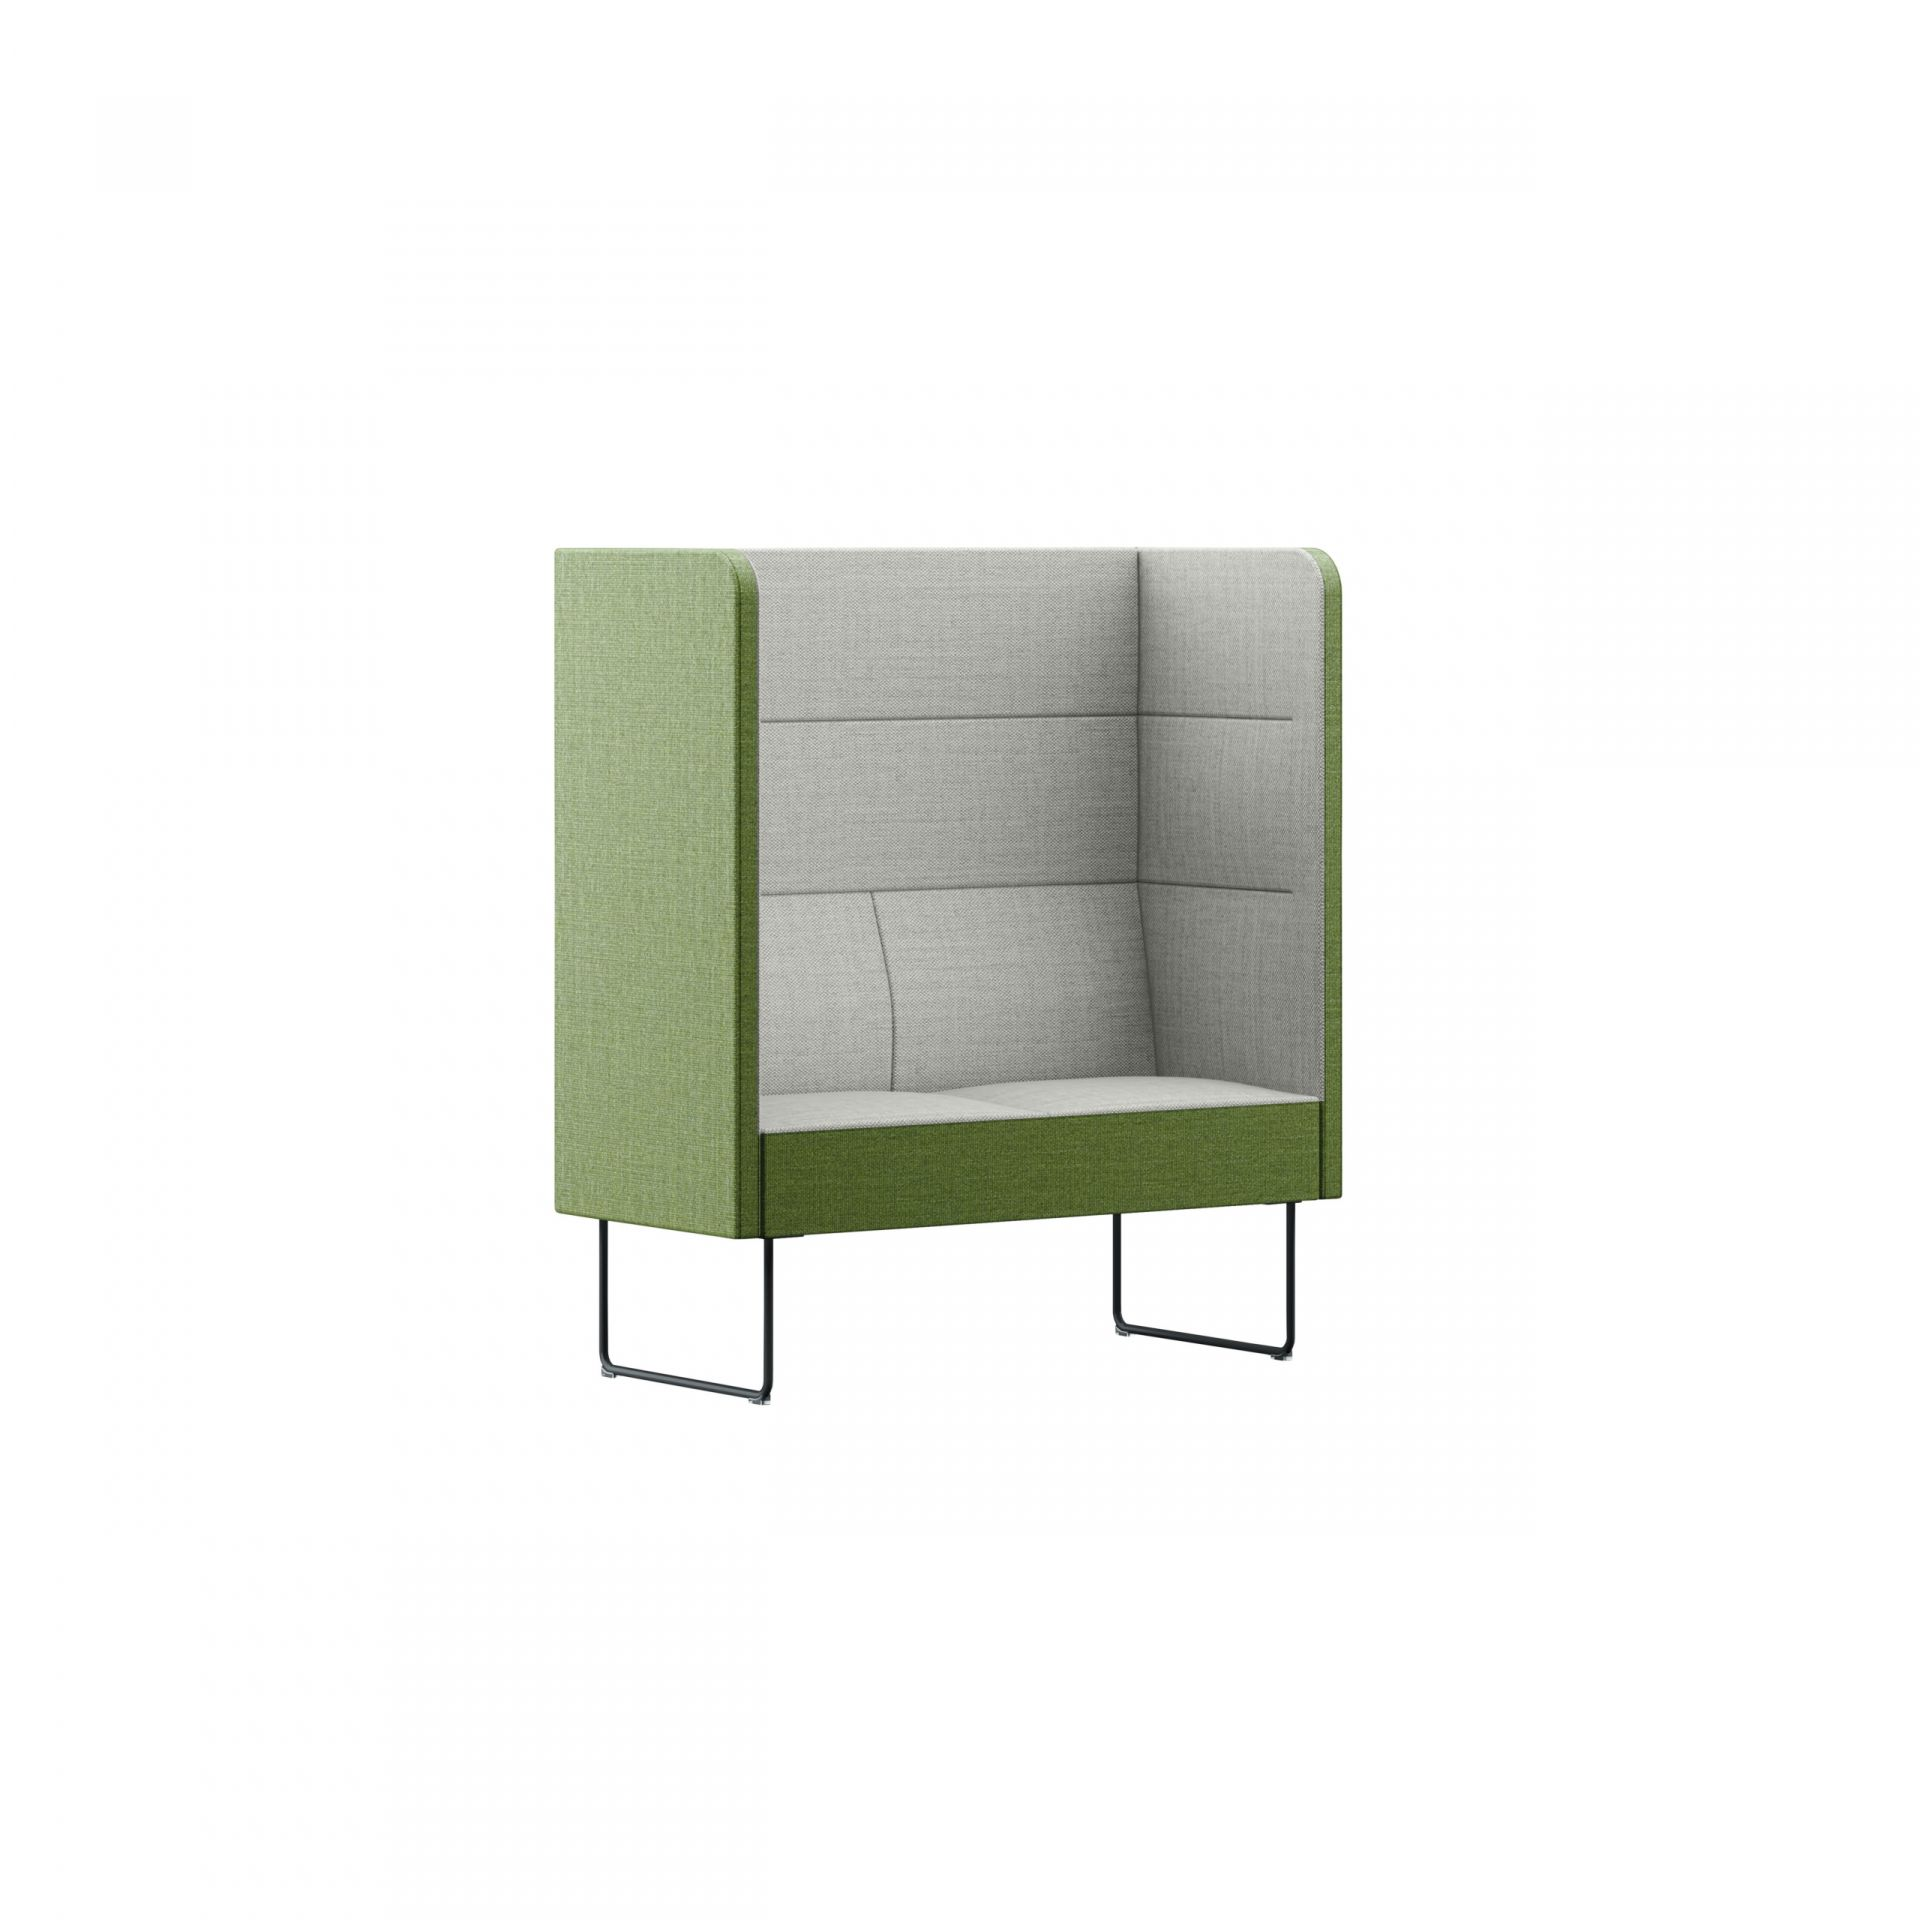 Mingle Sofa product image 5